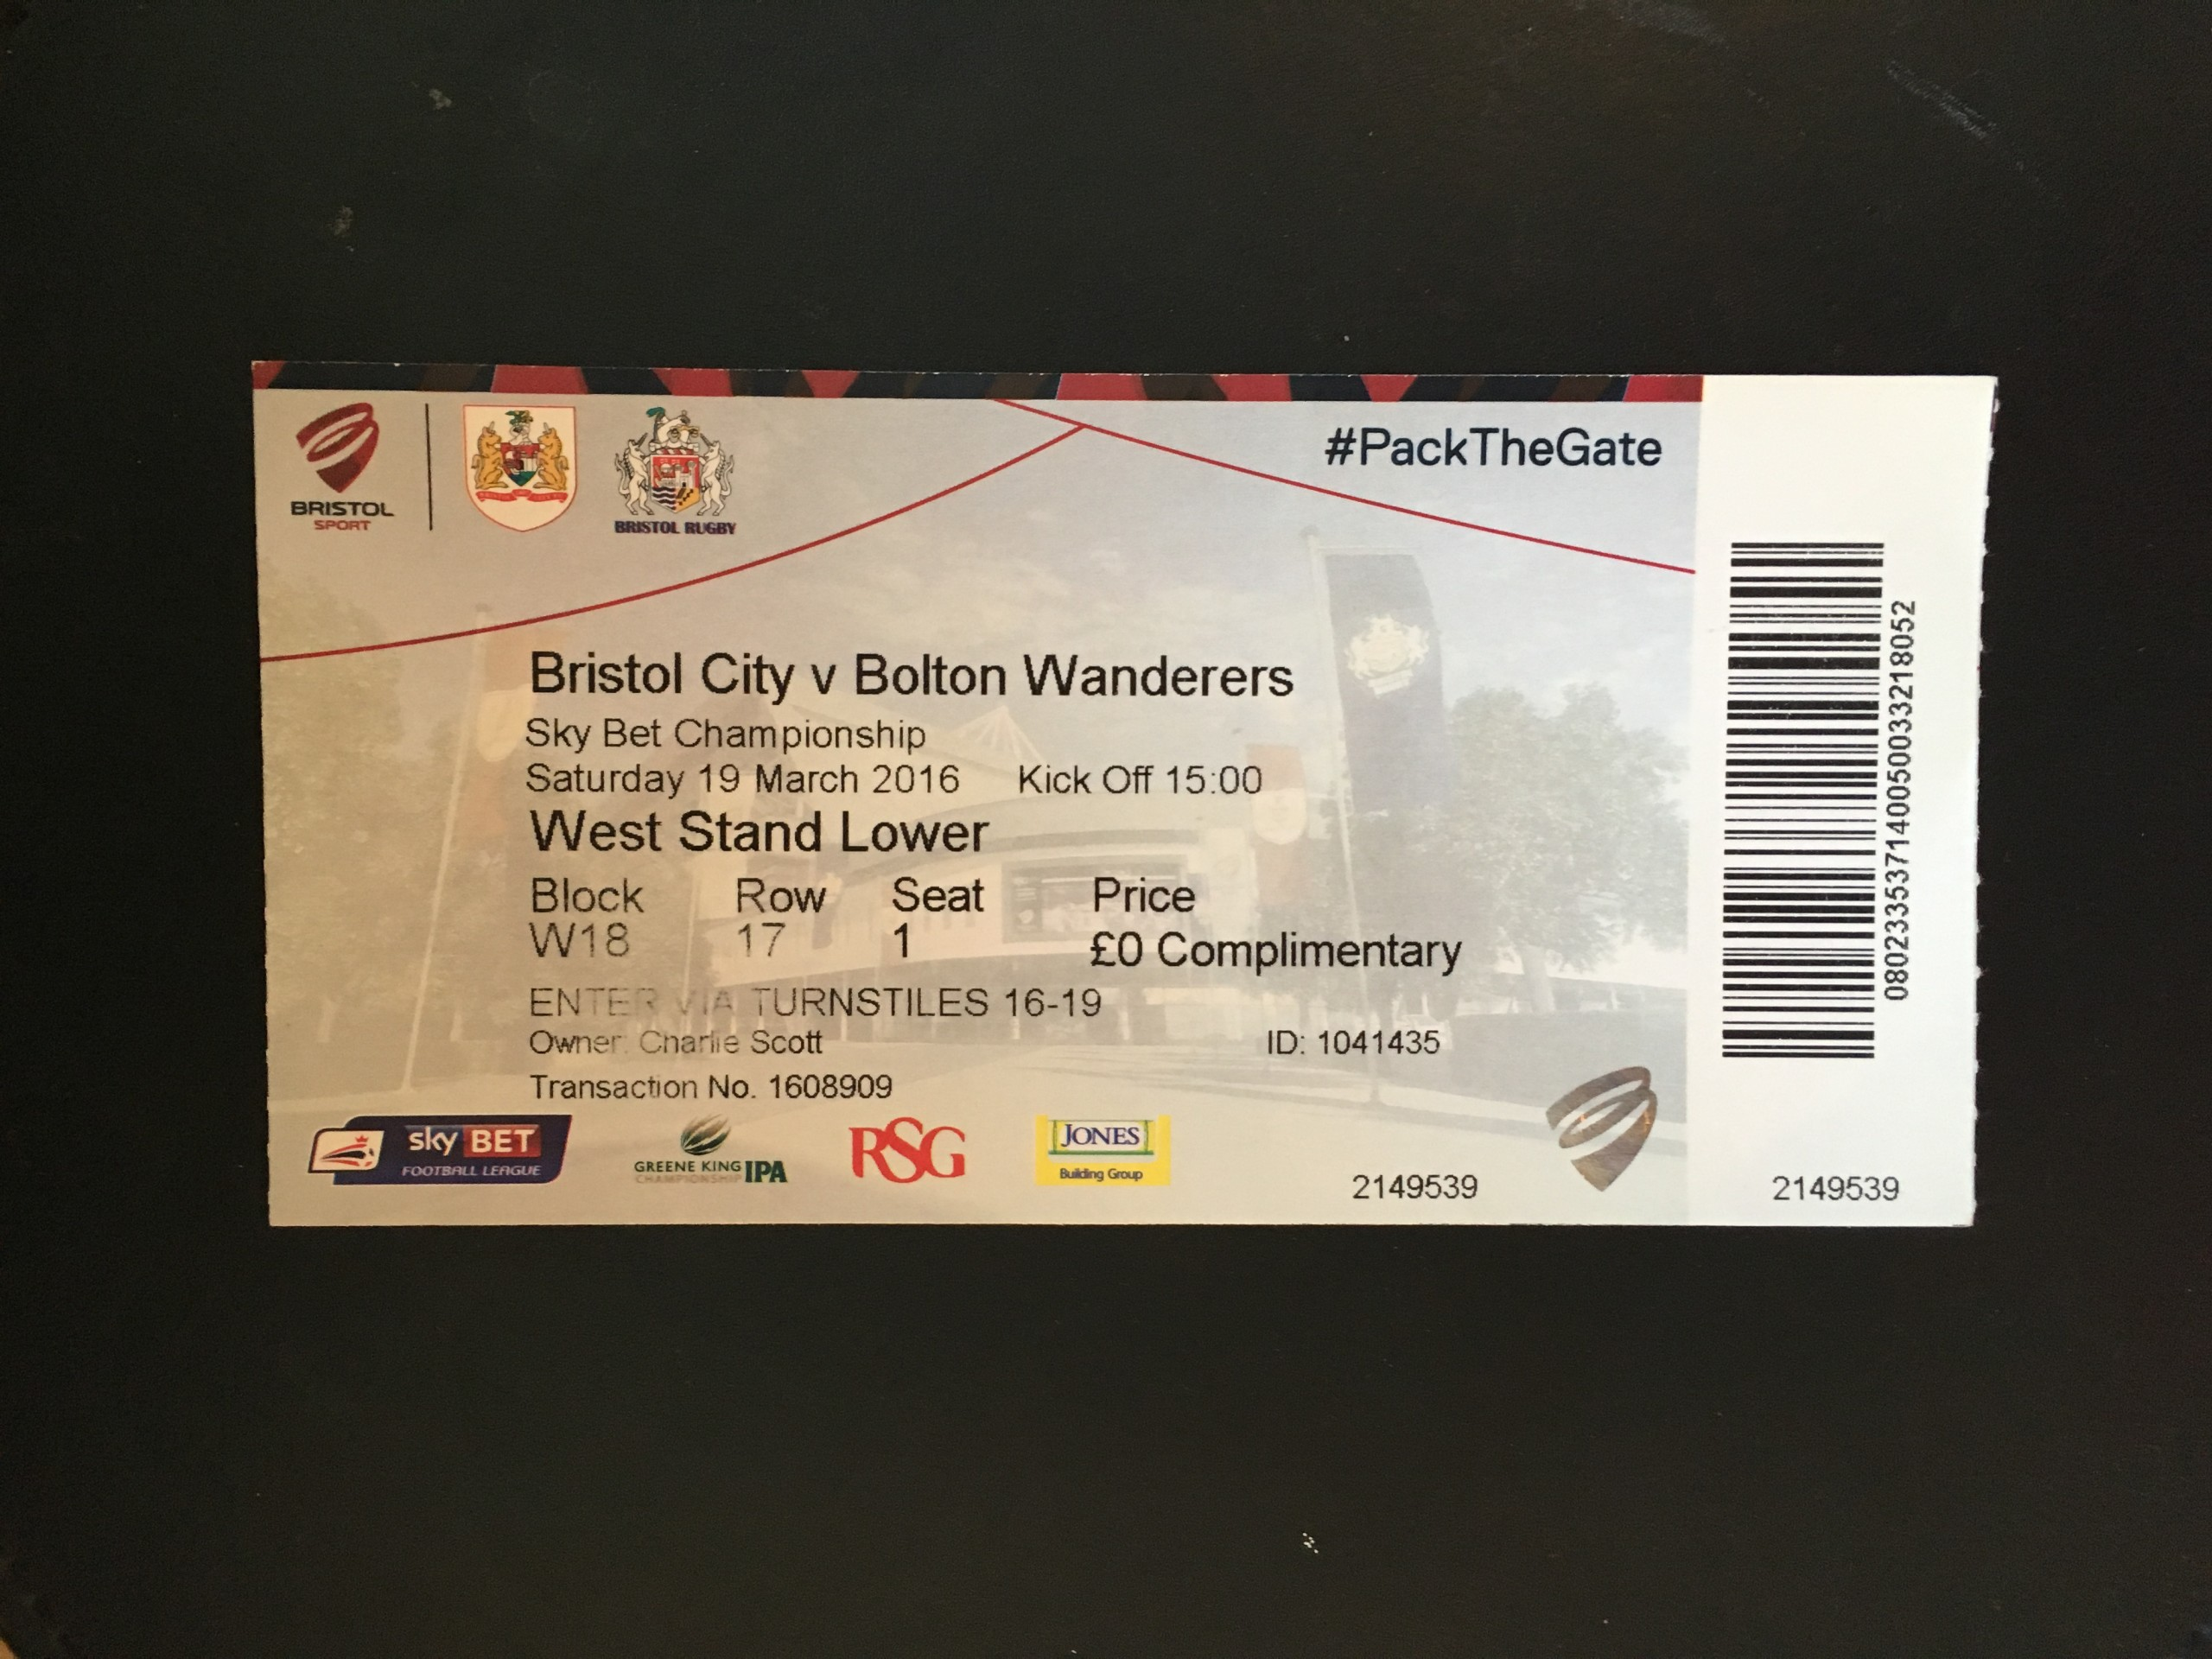 Bristol City v Bolton Wanderers 19-03-2016 Ticket